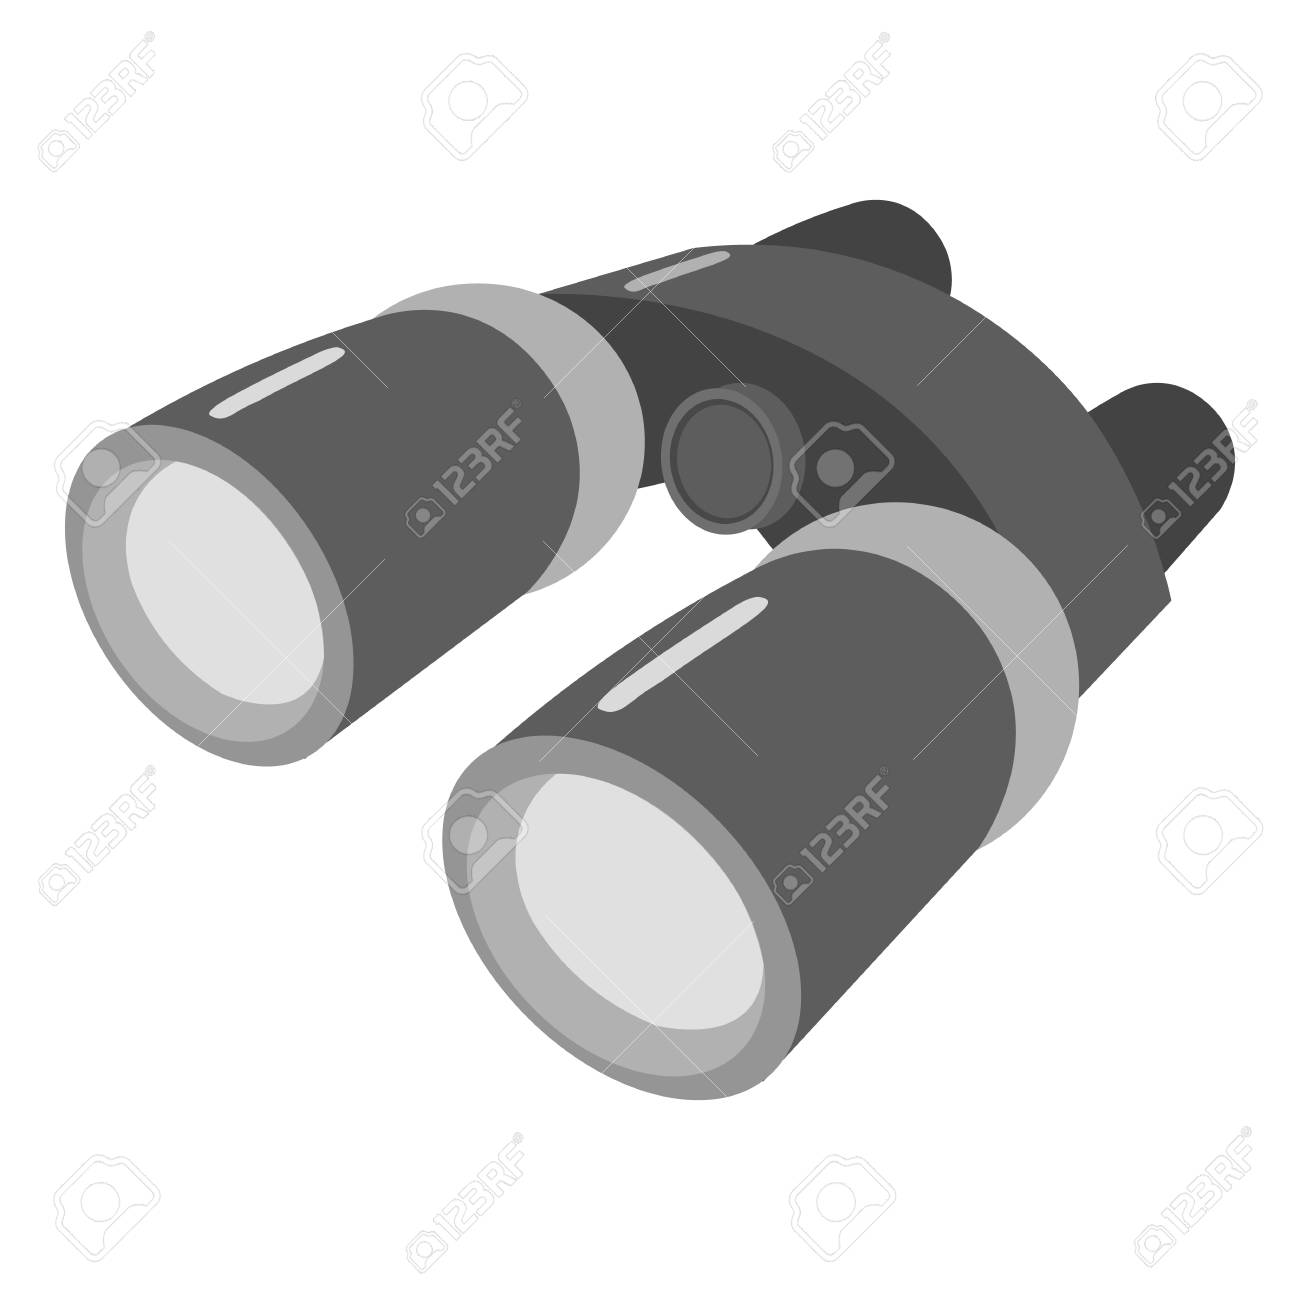 Binoculars icon of vector illustration for web and mobile design - 63725539